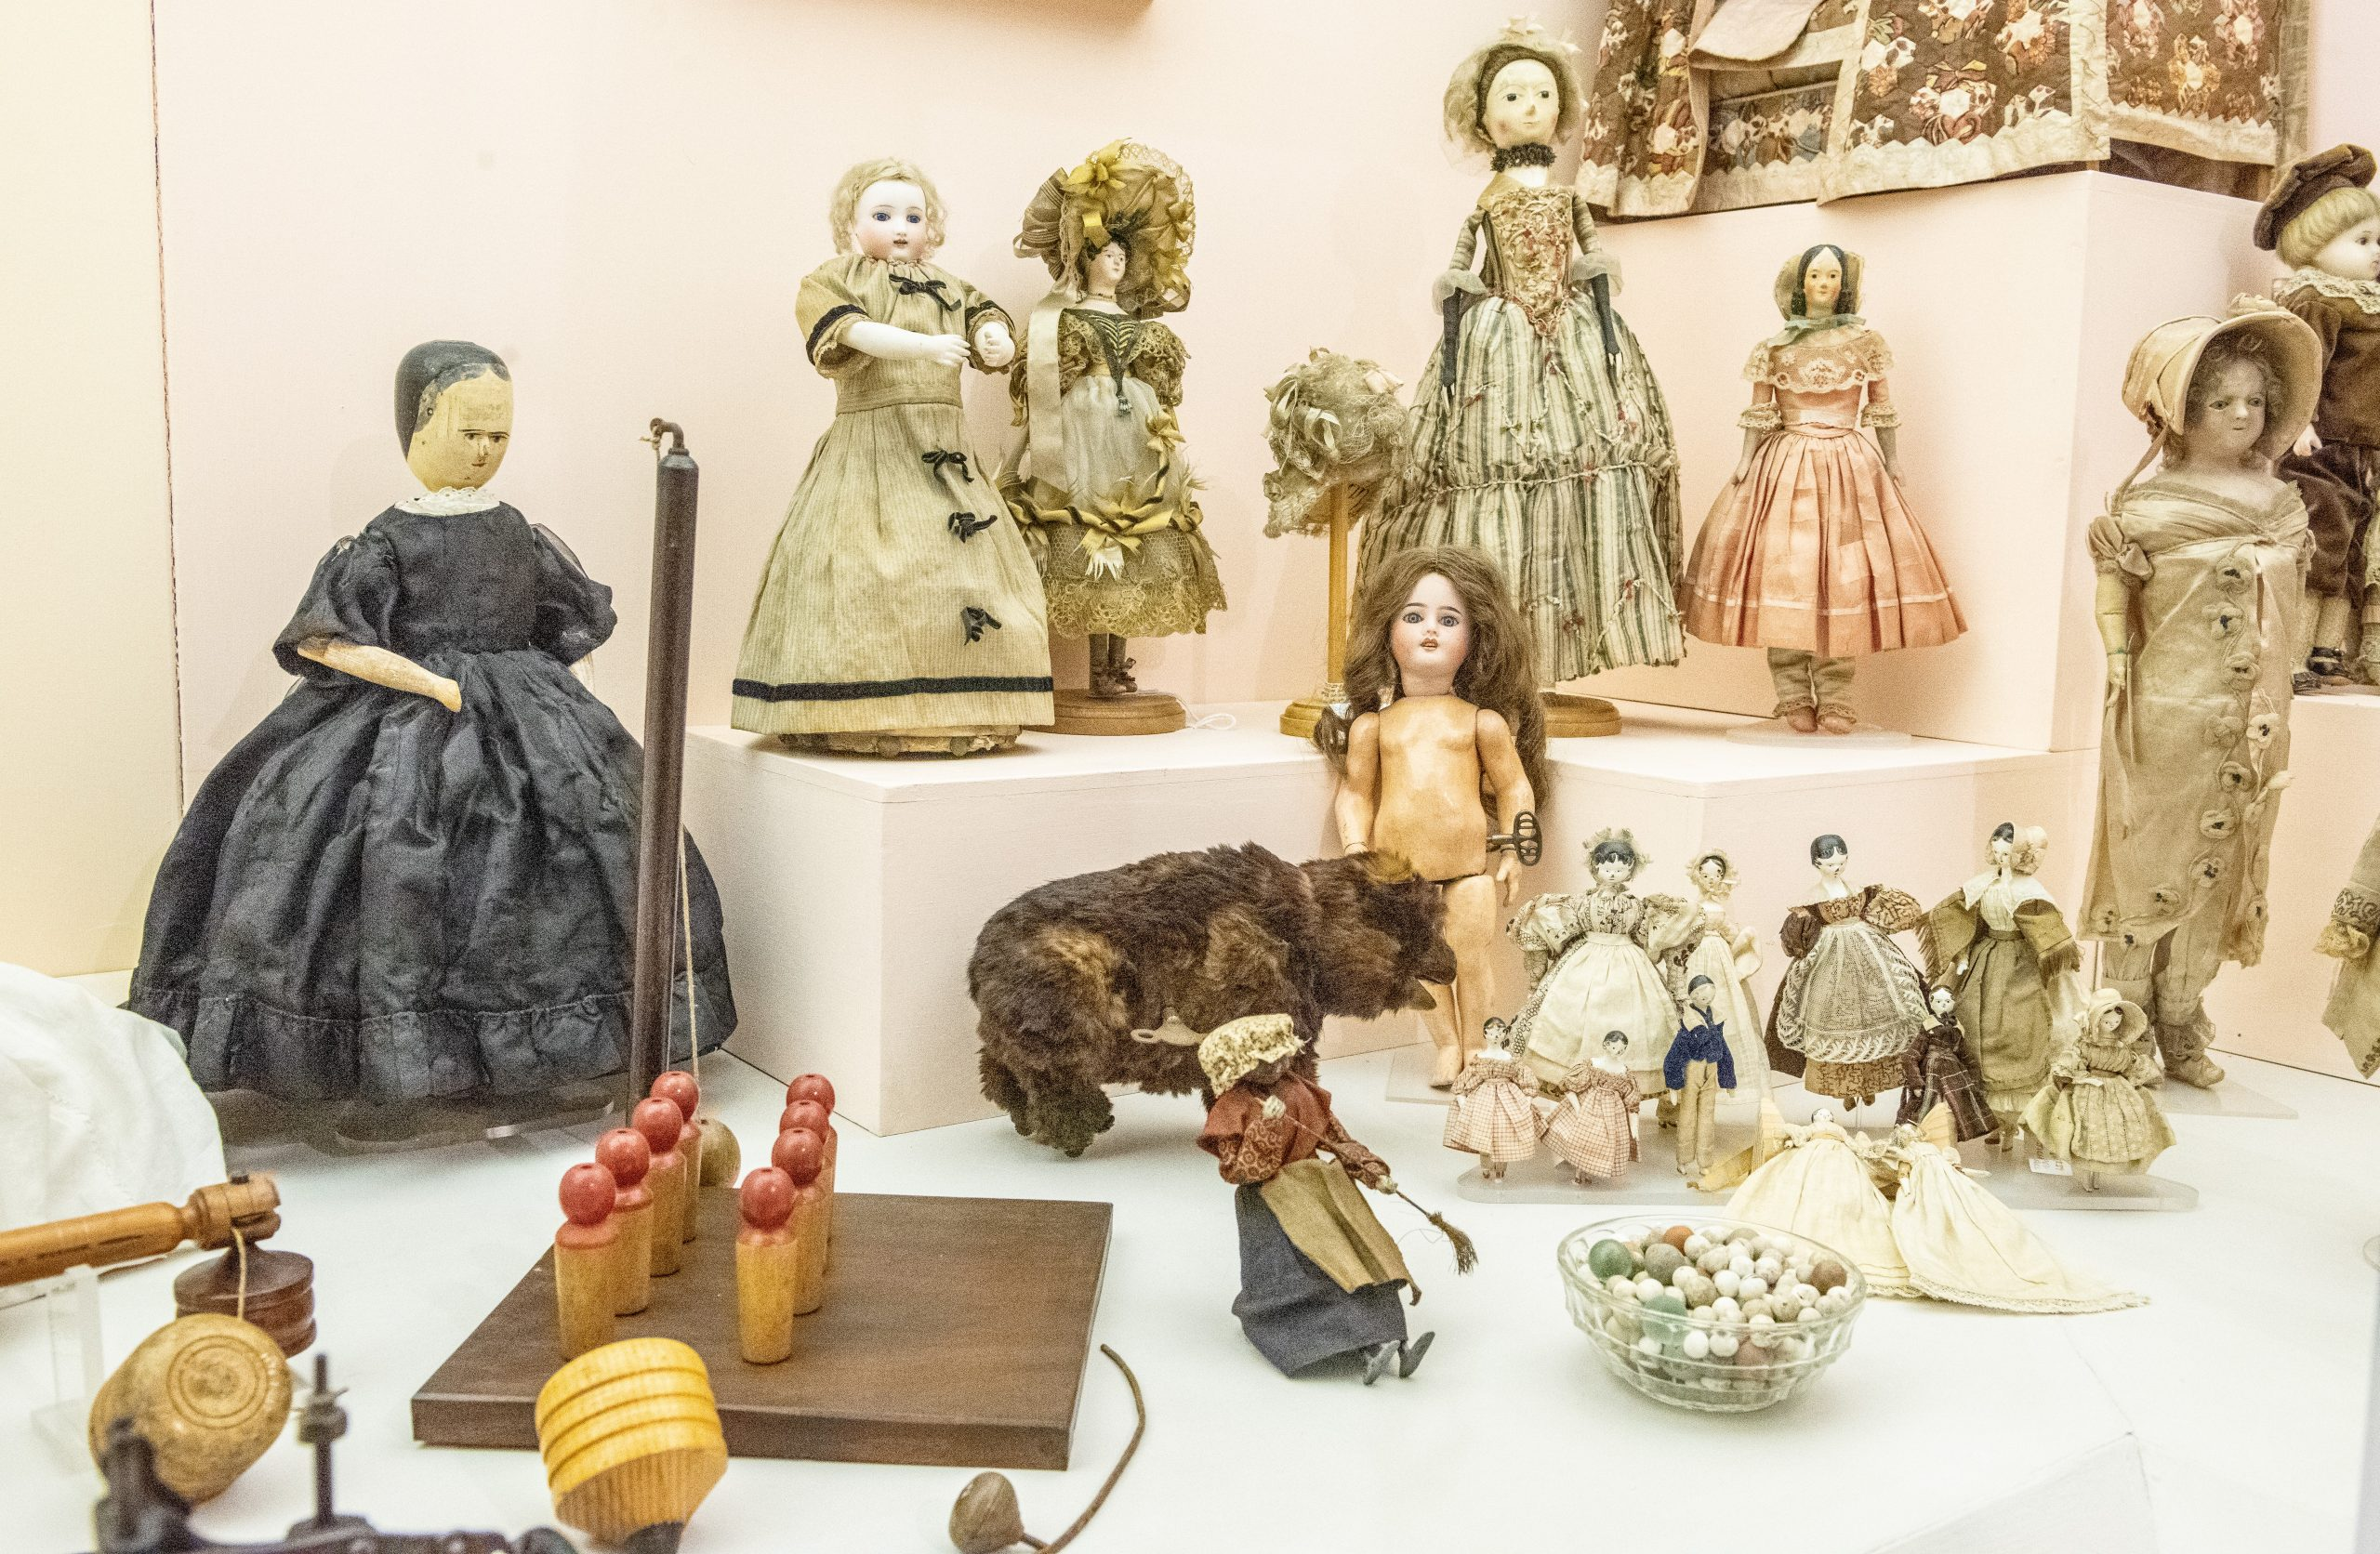 Museum dolls and toys